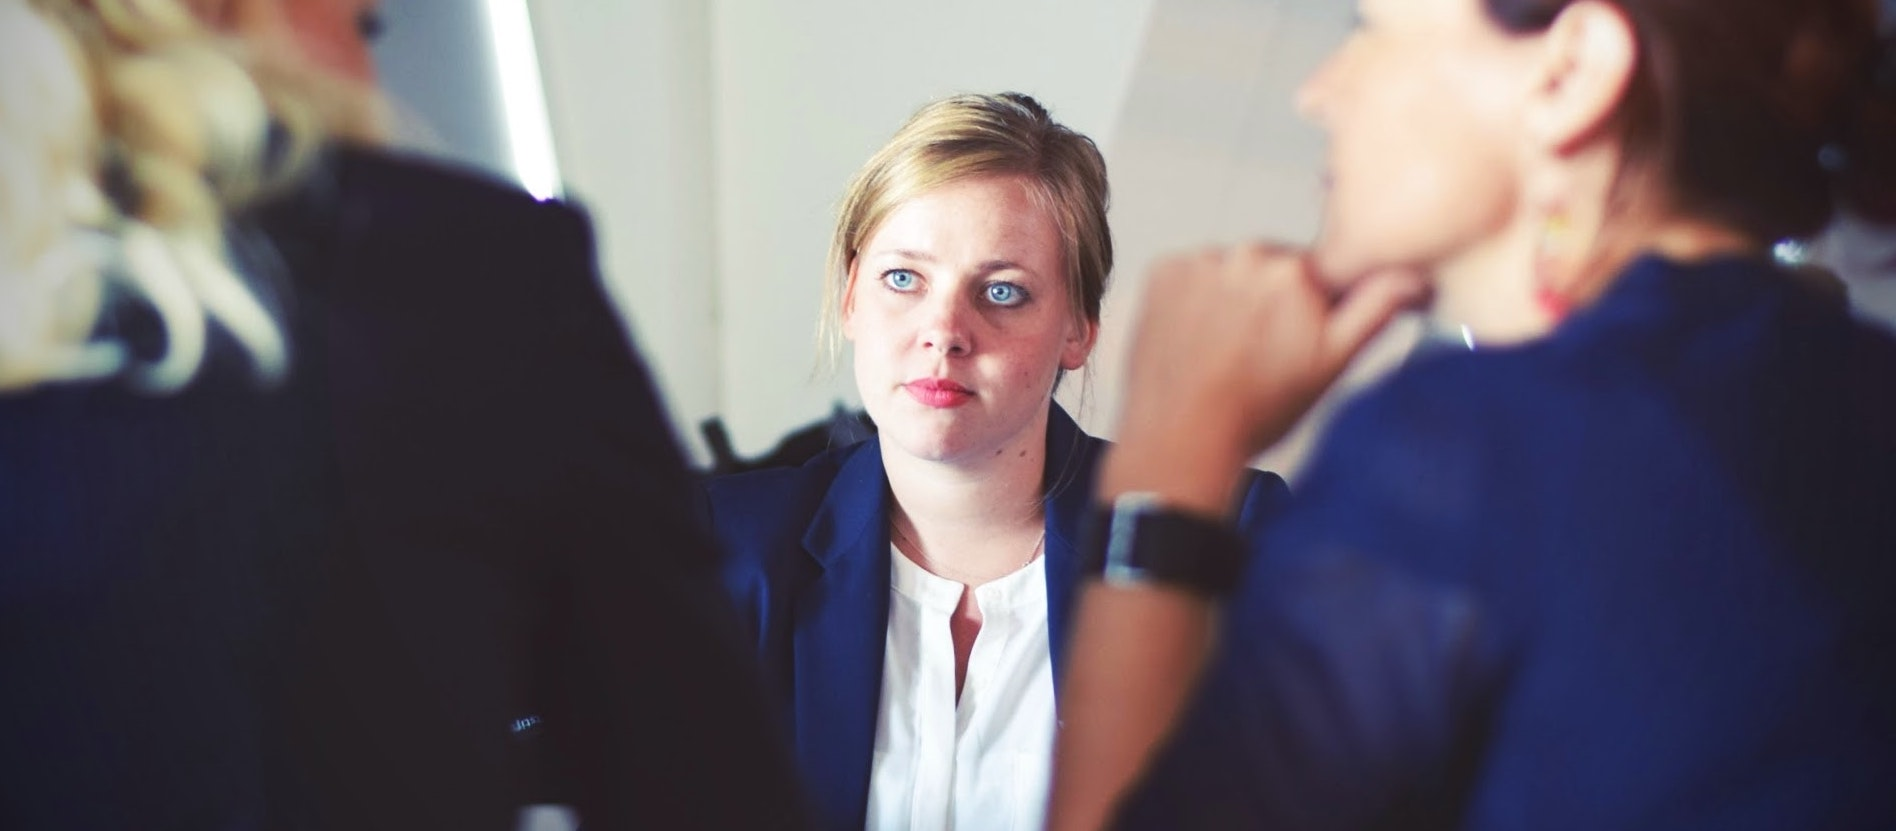 Be more assertive at work (not aggressive)